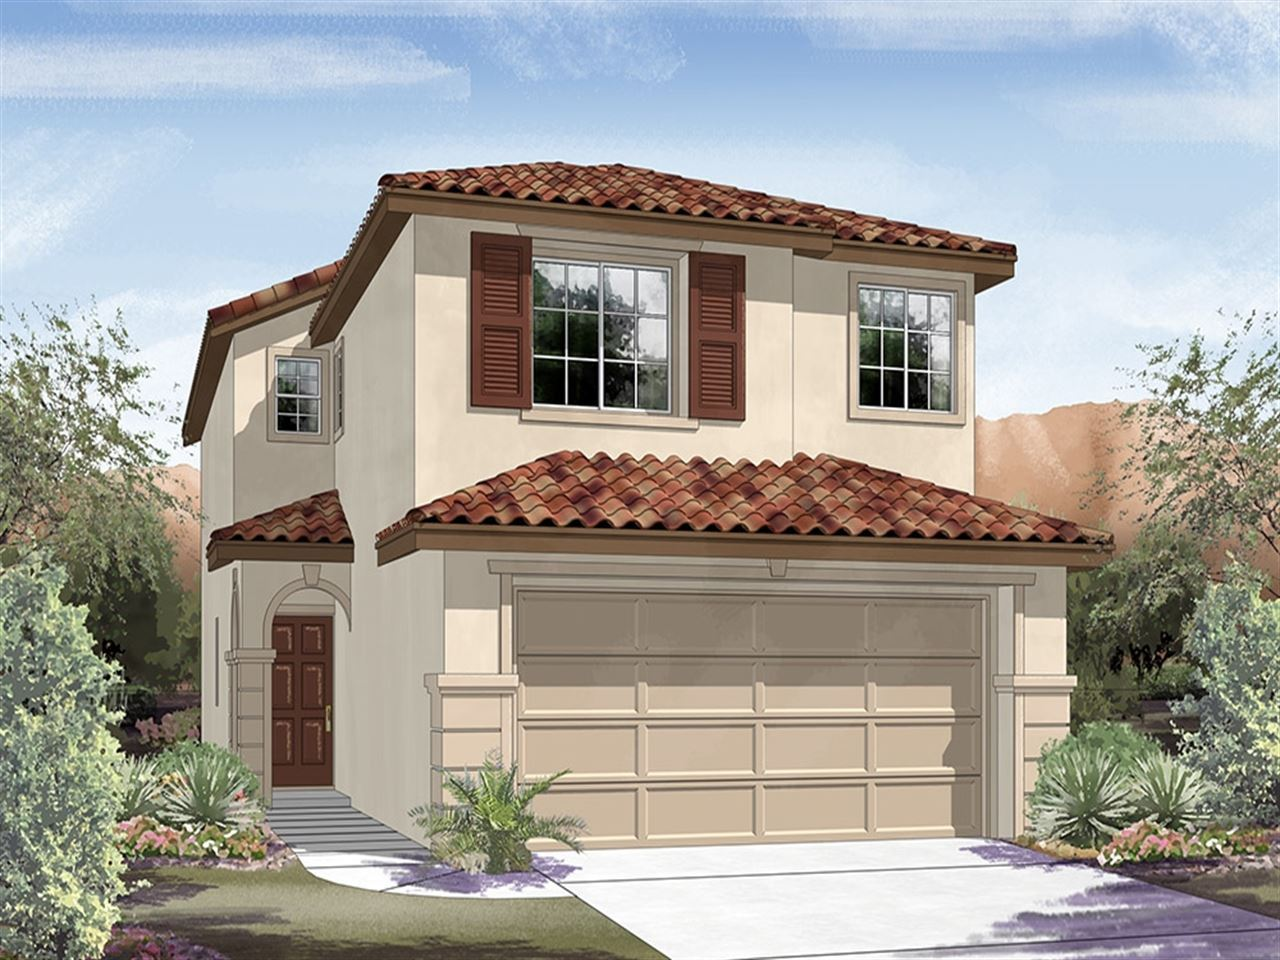 Ryland Homes Quintessa Casella 1084397 Las Vegas NV New Home For